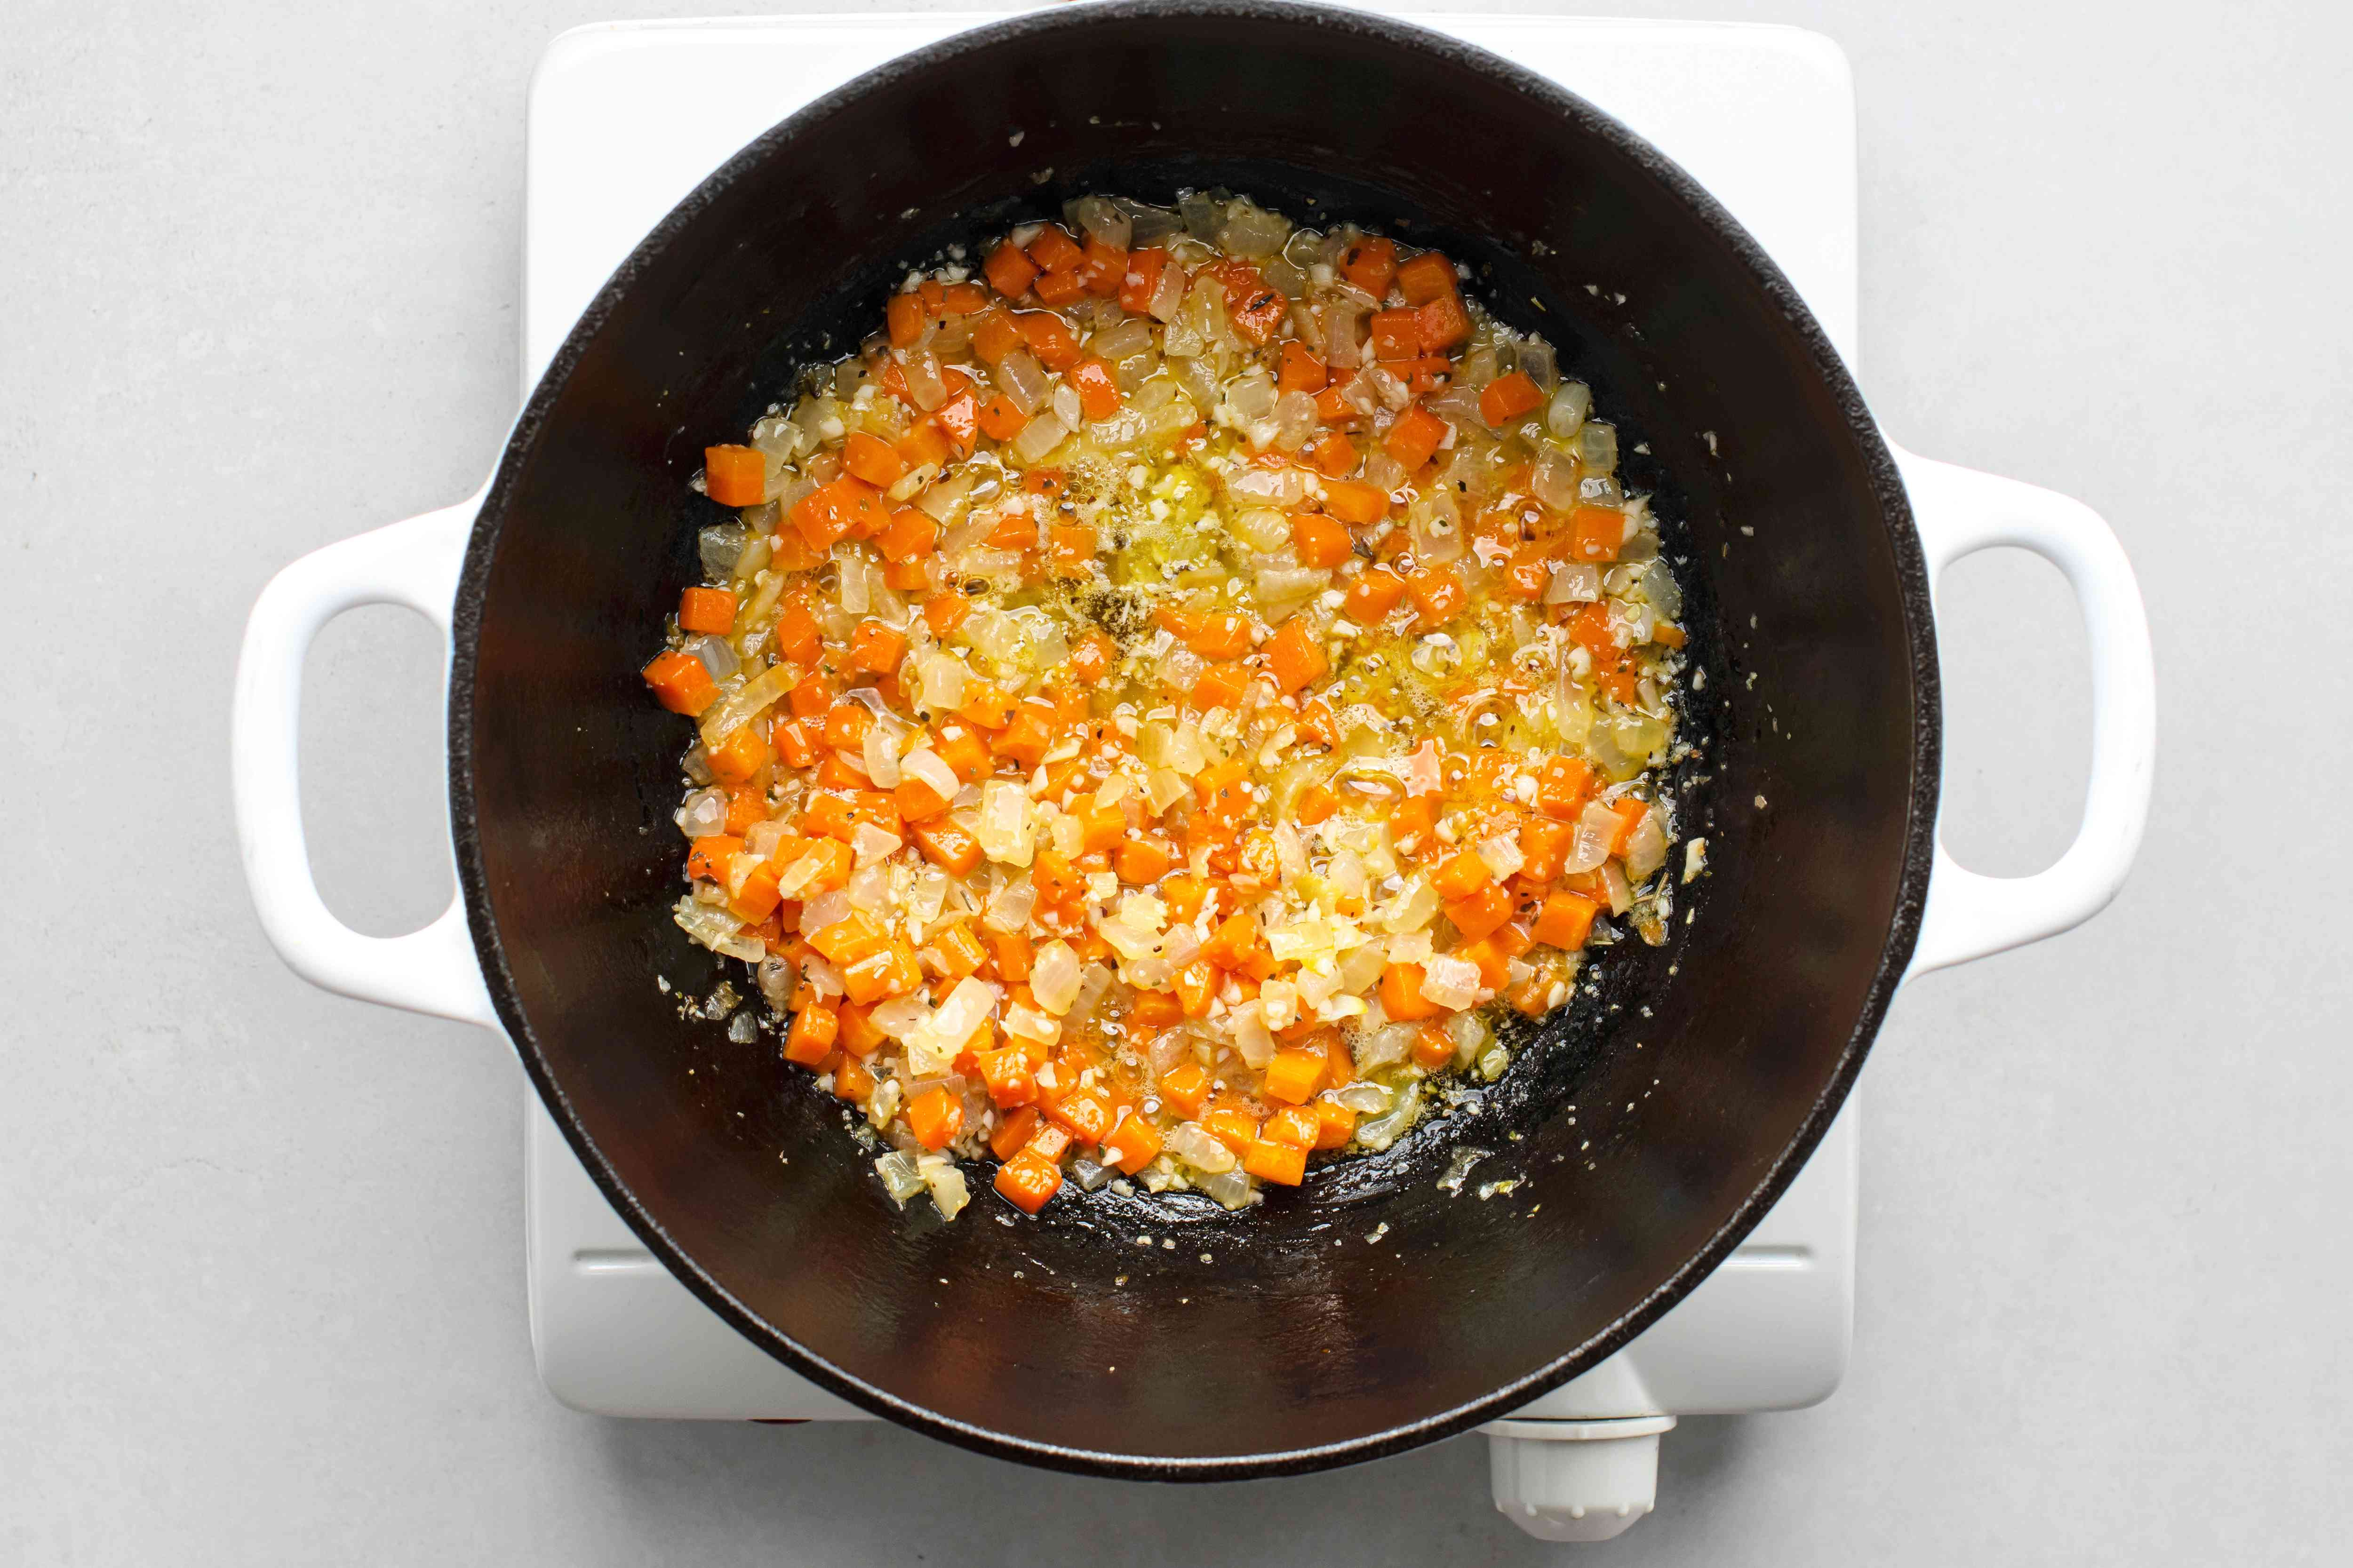 Add the garlic, lemon juice, and herb seasoning to the vegetable mixture in the Dutch oven